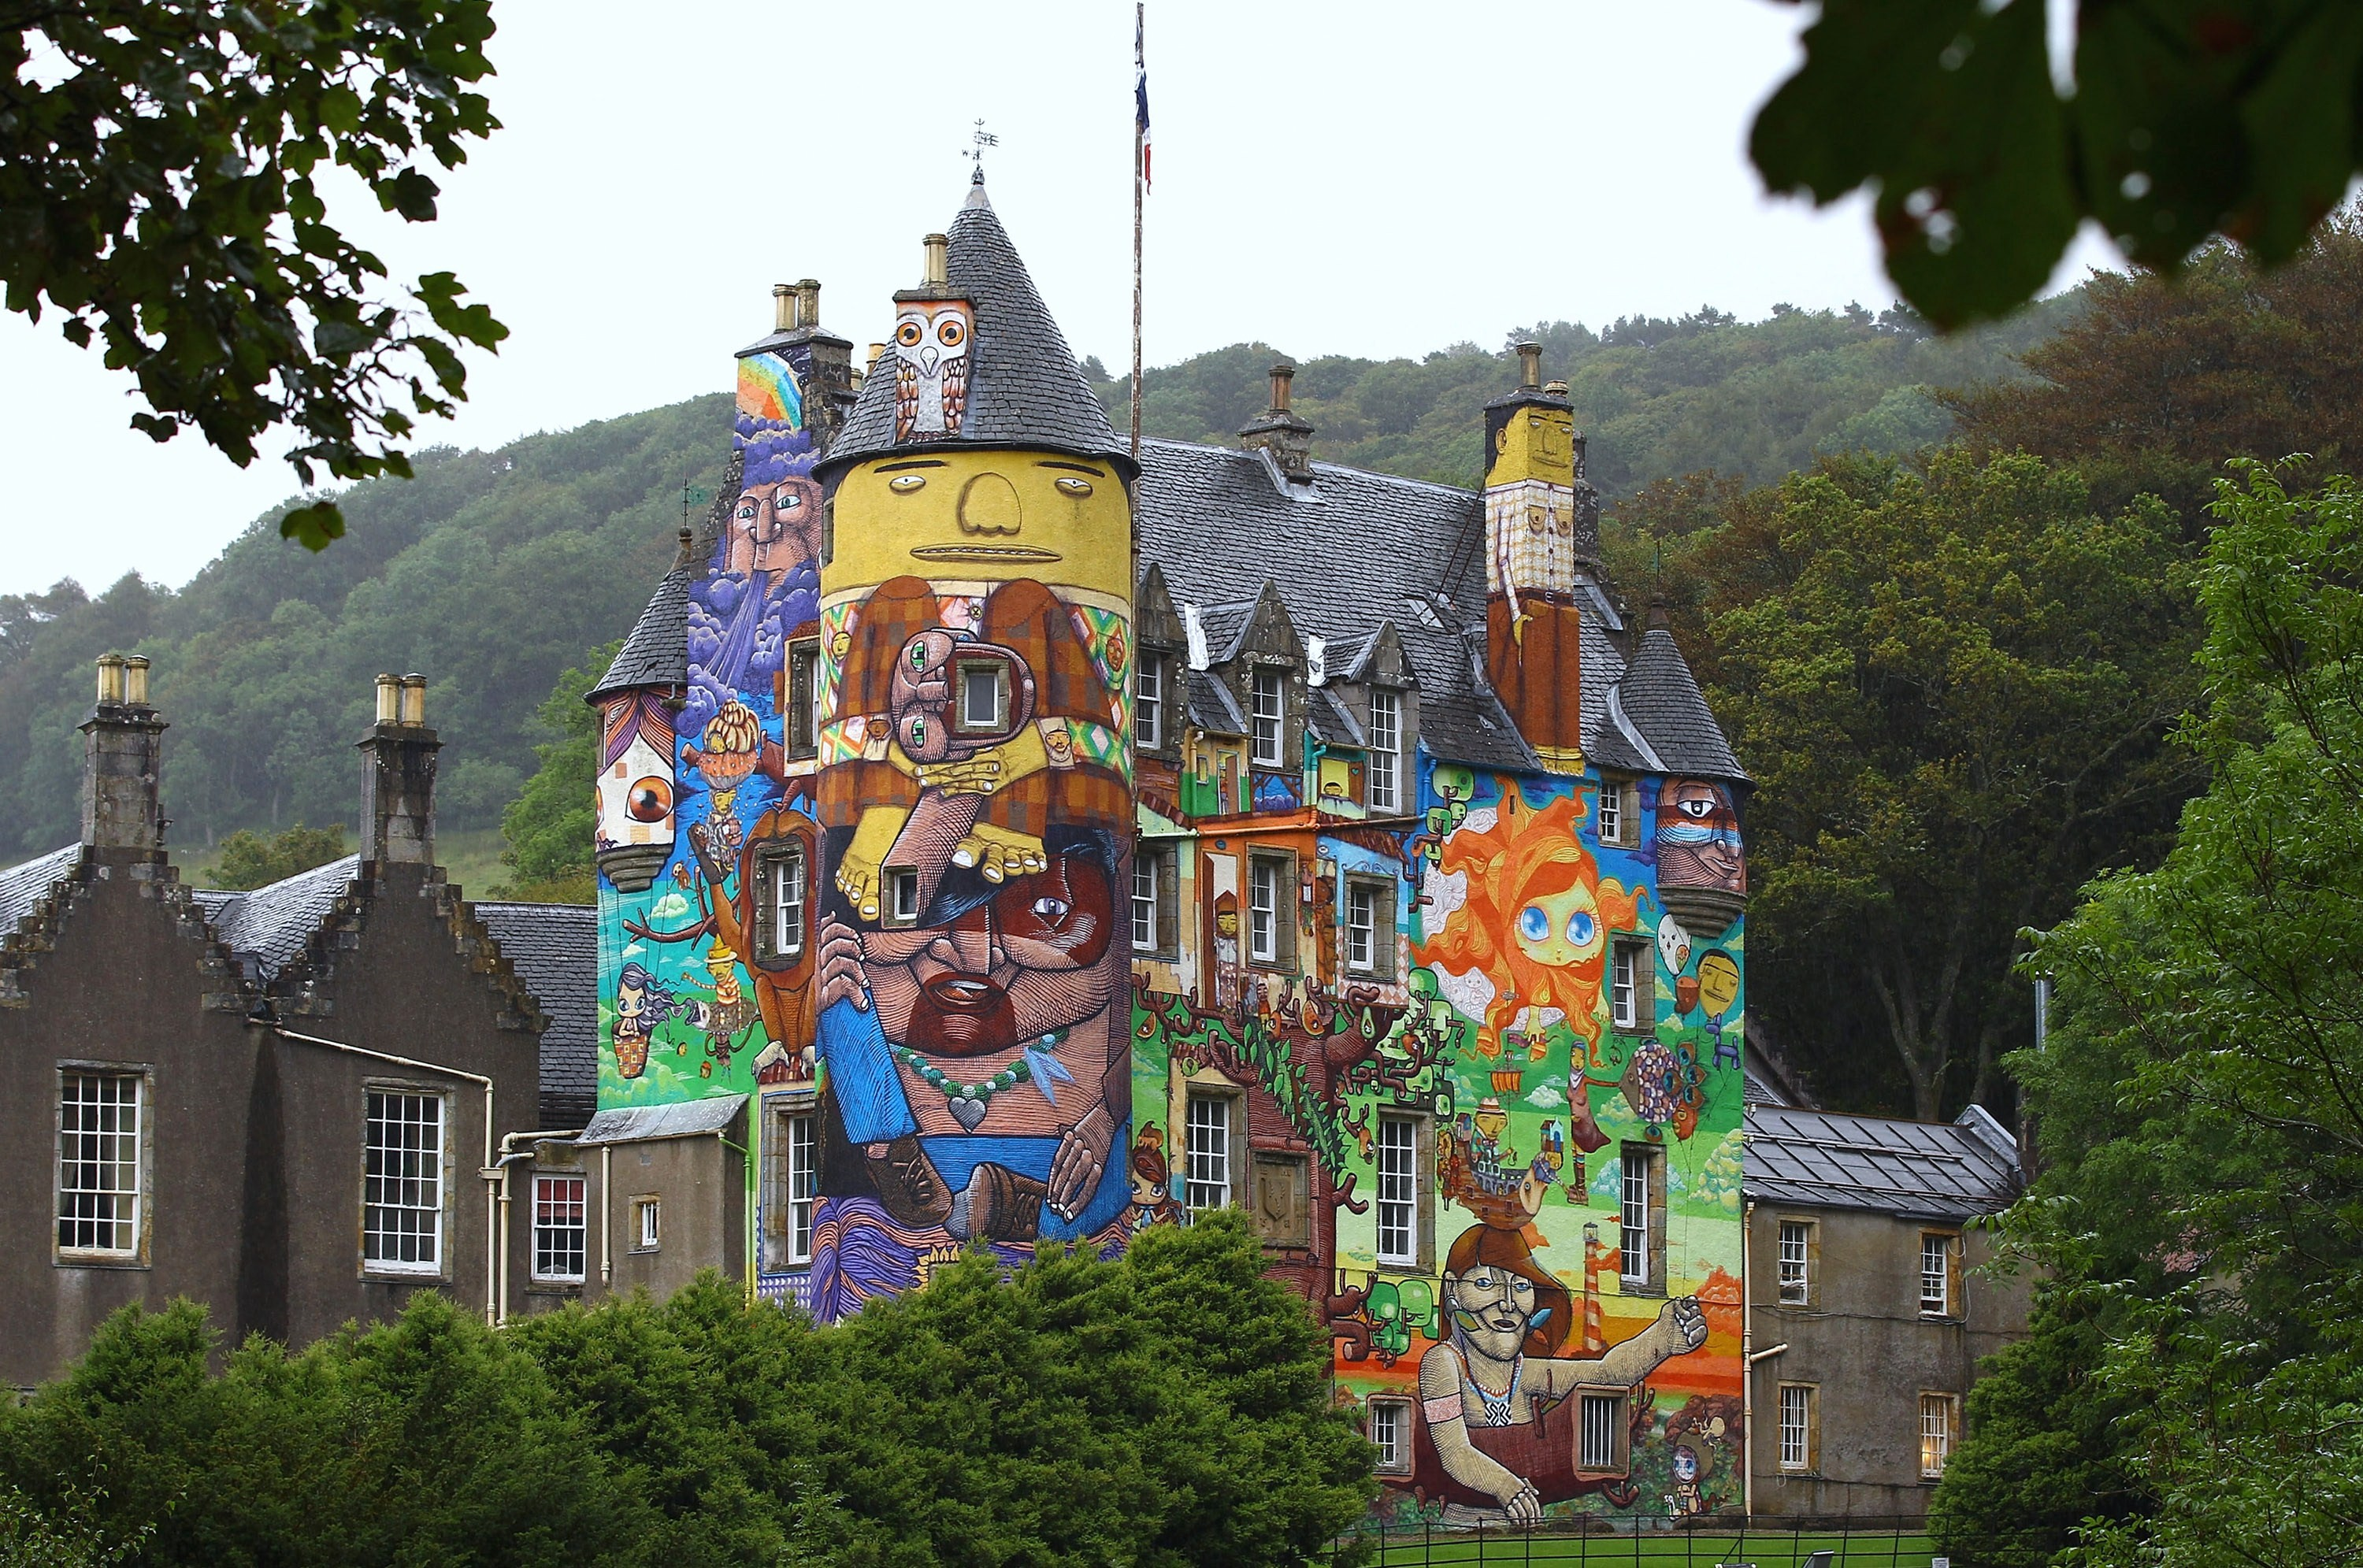 LARGS, SCOTLAND - AUGUST 30: A general view of Kelburn Castle on August 30, 2011 in Largs, Scotland. The Earl of Glasgow has asked Historic Scotland if the graffiti can remain as a permanent feature of the Castle. The local council allowed the mural to be painted on the wall by Brazilian artists in 2007, with a three year limit put on the graffiti pending the start of rendering work at the castle. (Photo by Jeff J Mitchell/Getty Images)